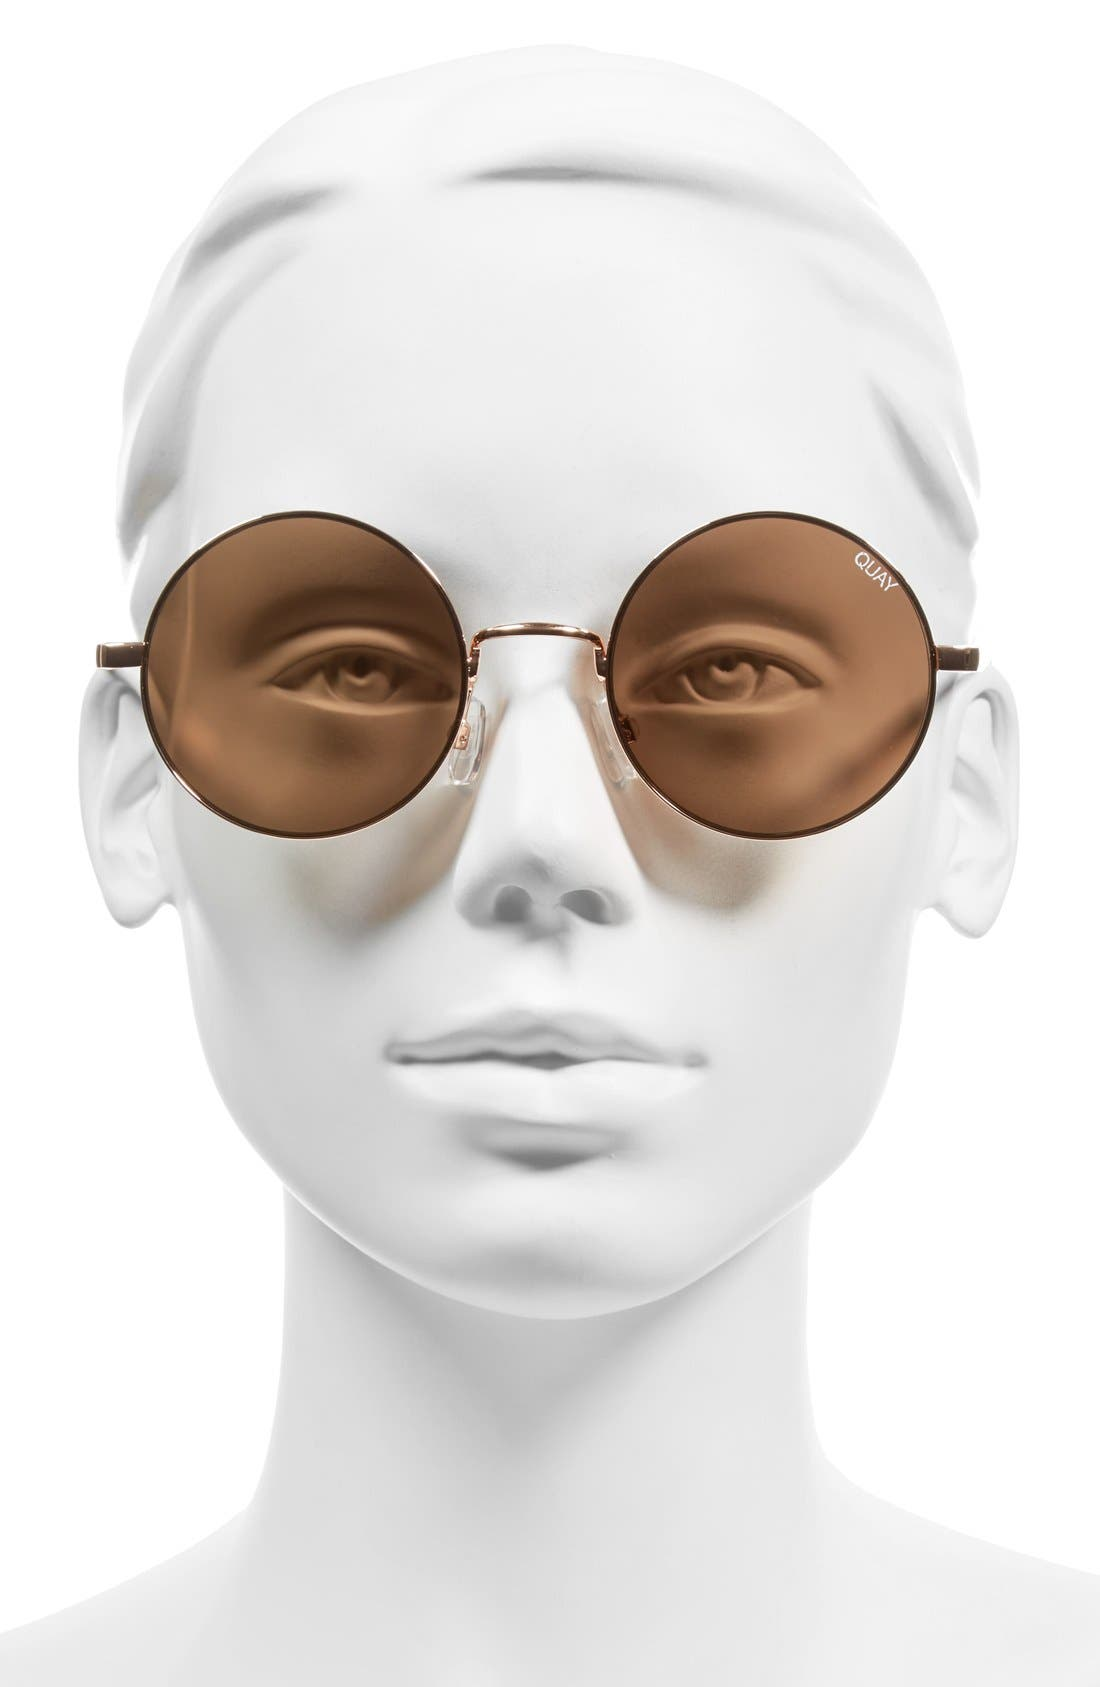 'Electric Dreams' 52mm Round Sunglasses,                             Alternate thumbnail 2, color,                             Rose Gold/ Brown